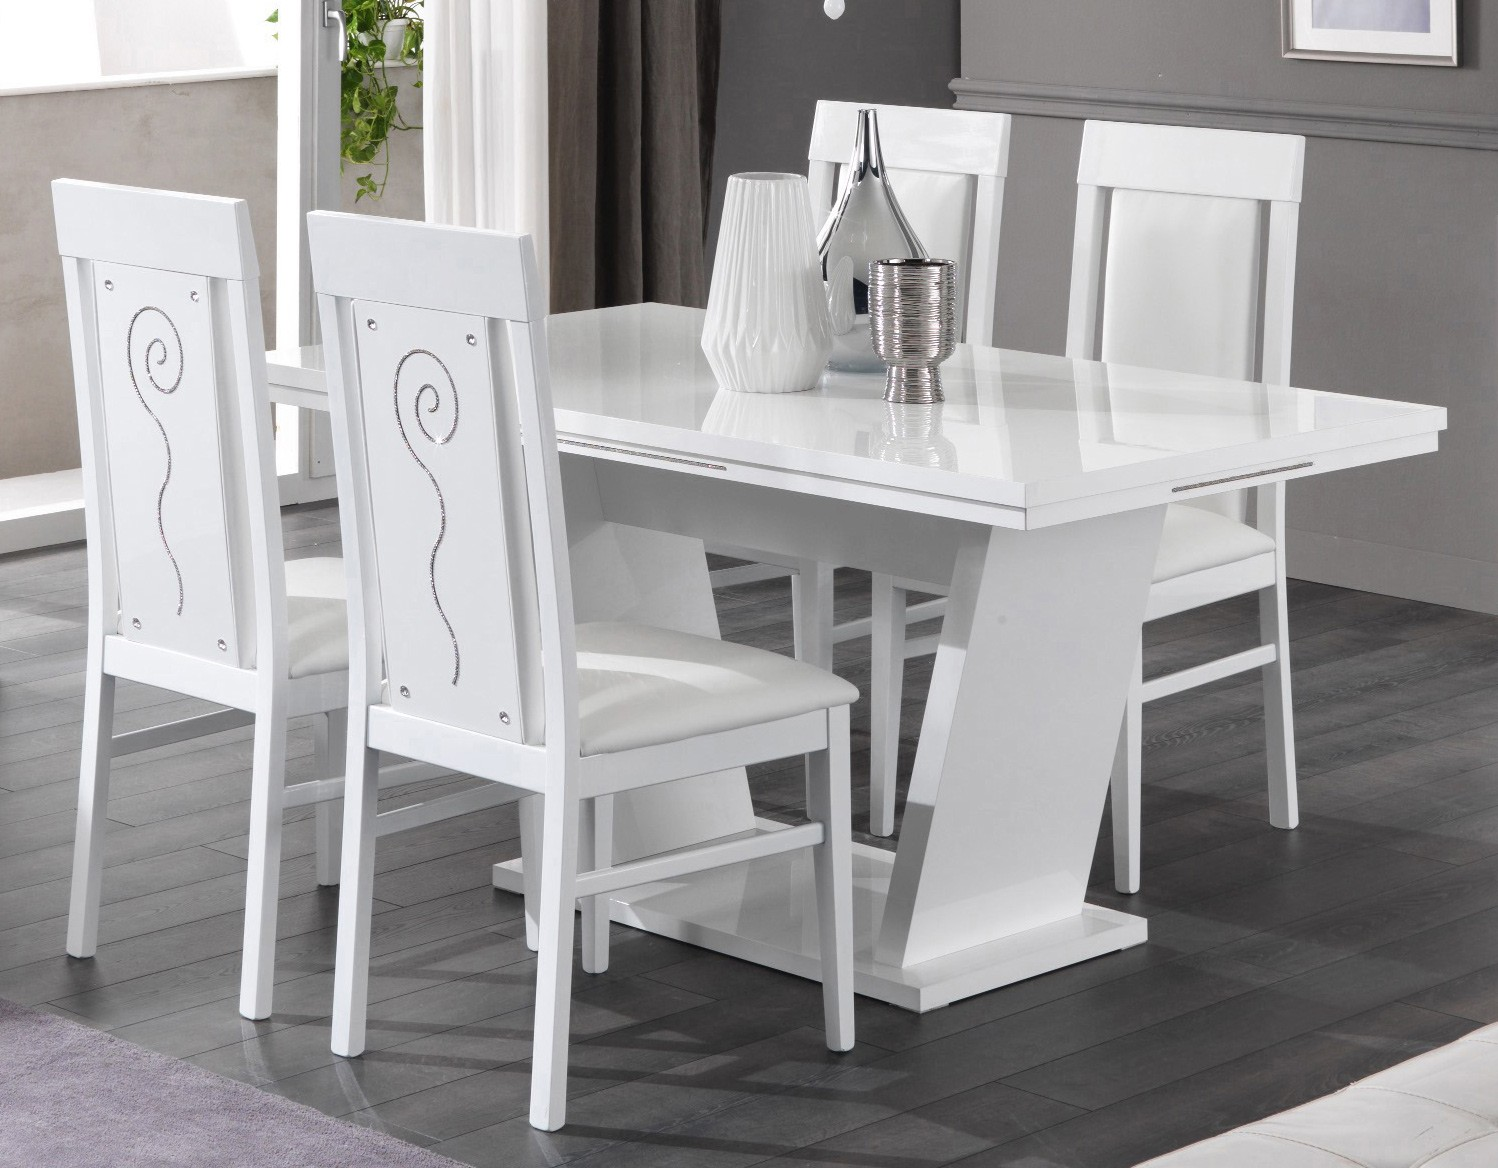 table de salle a manger design laque blanc brillant britany